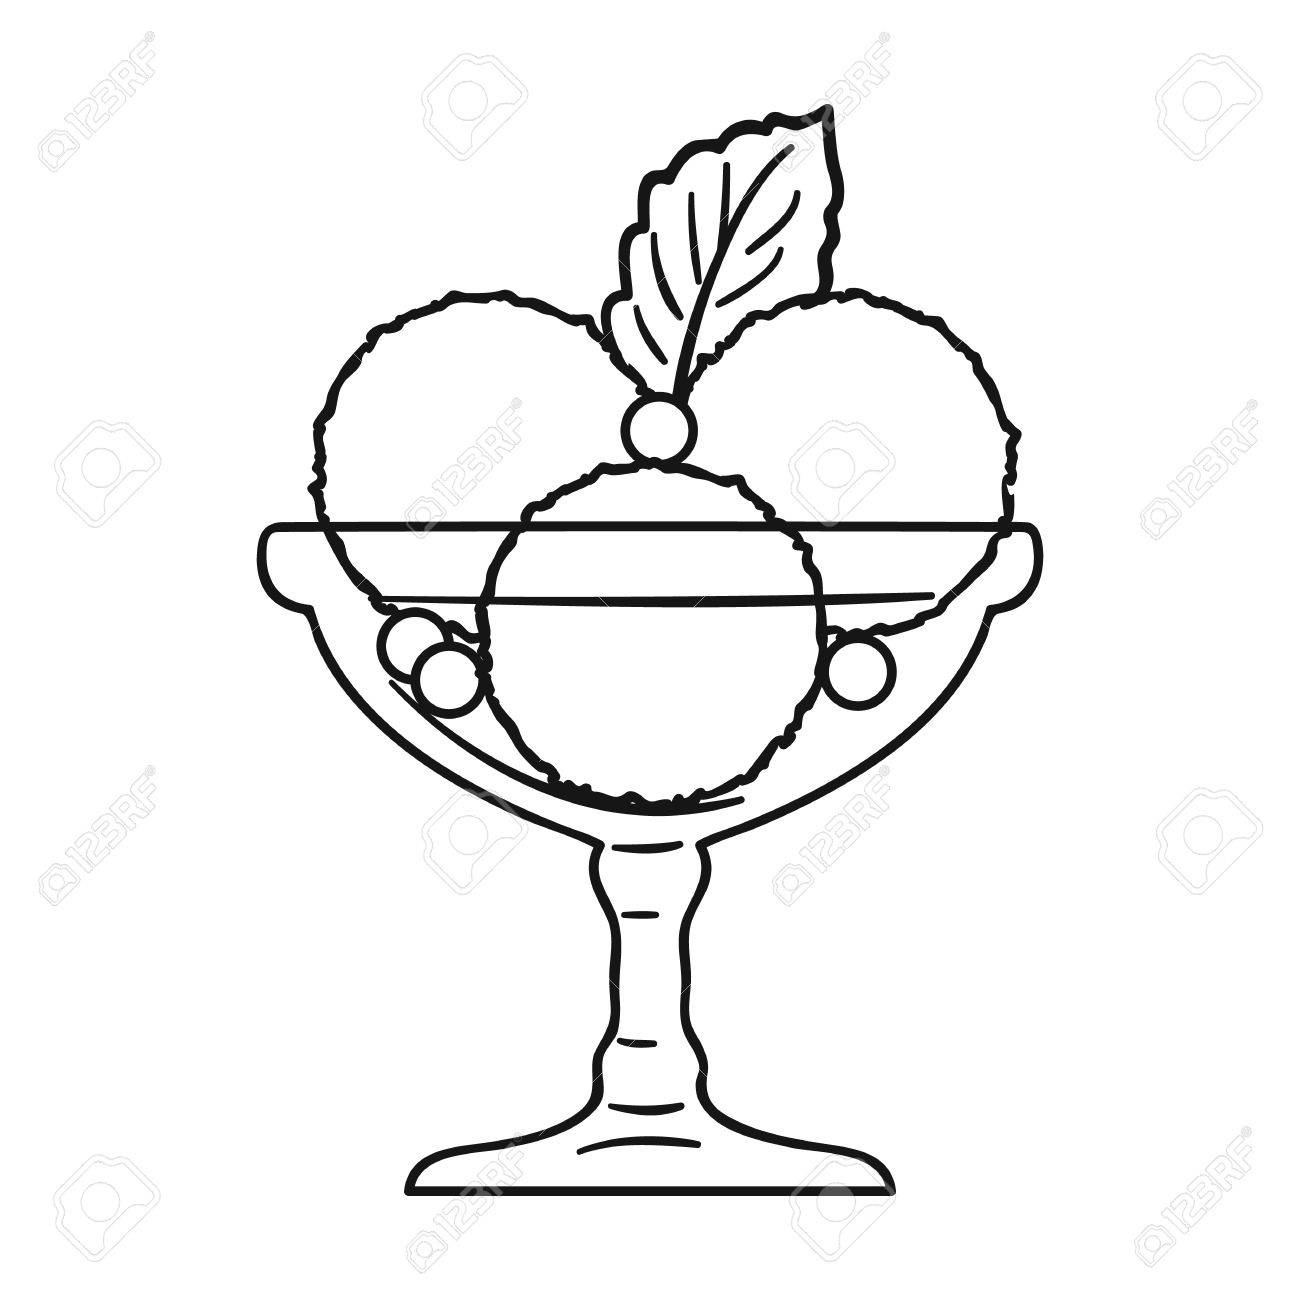 Ice Cream In The Glass Bowl Icon In Outline Style Isolated On ... for Bowl Of Ice Cream Clipart Black And White  53kxo